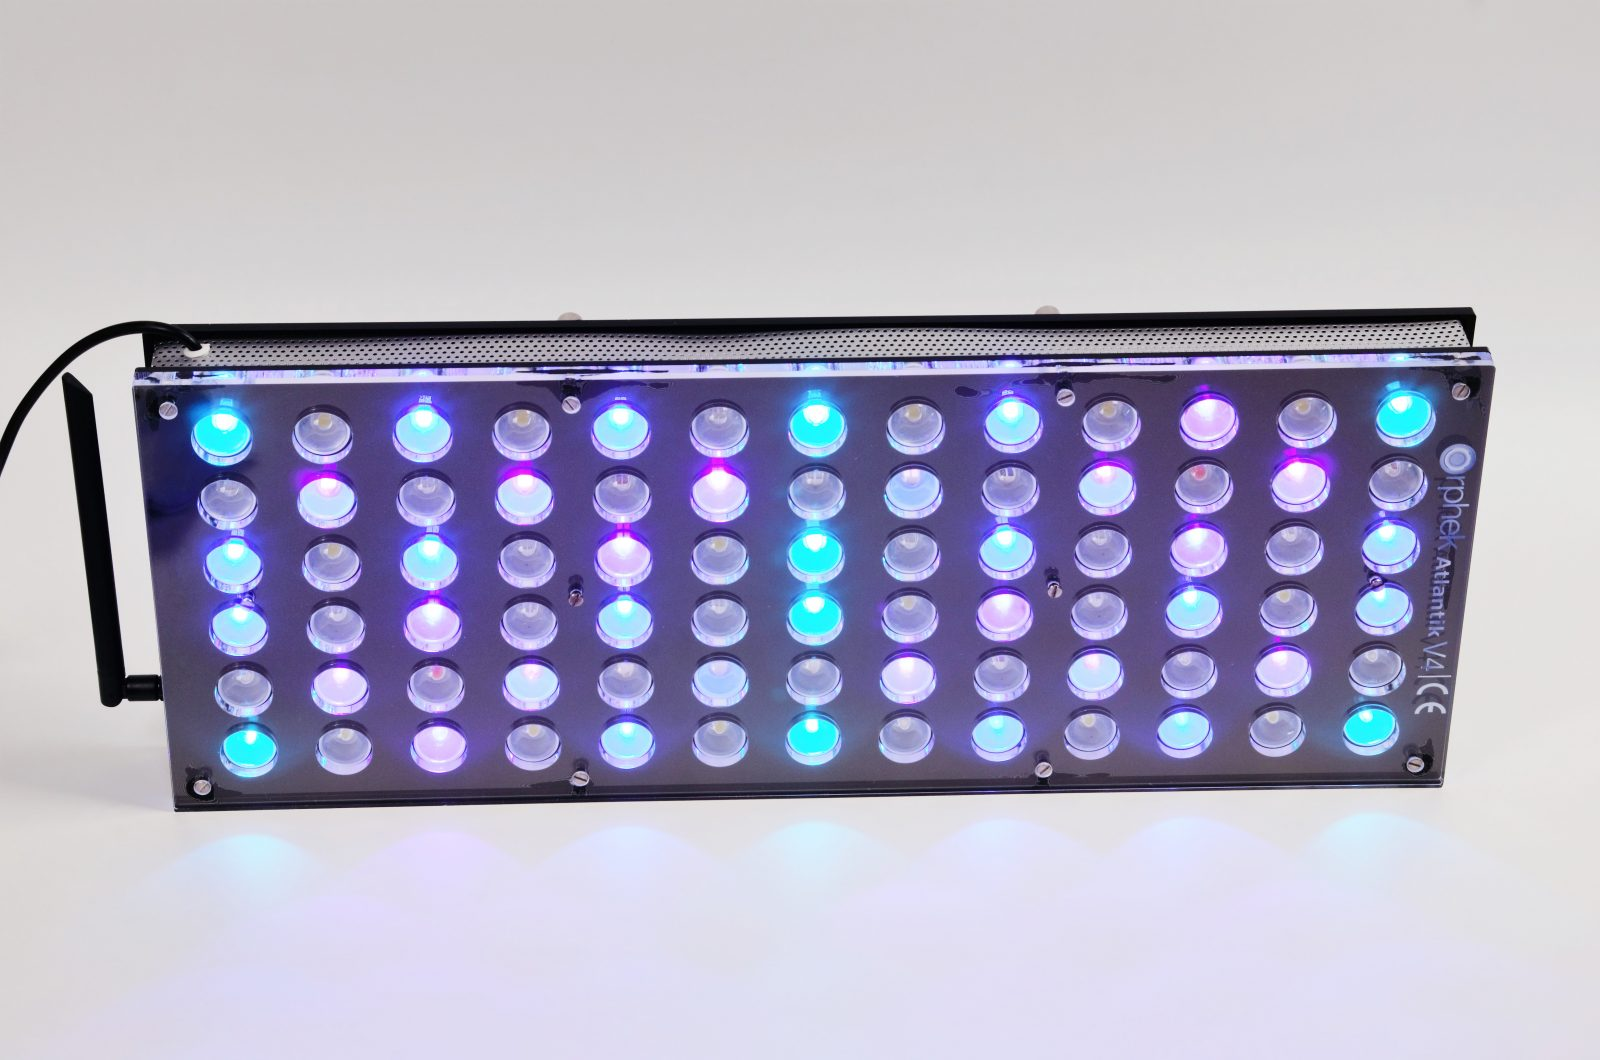 Orphek-Aquarium-LED-Lighting-Reef-Atlantik-V4-ljus på kanalen 2 + 3